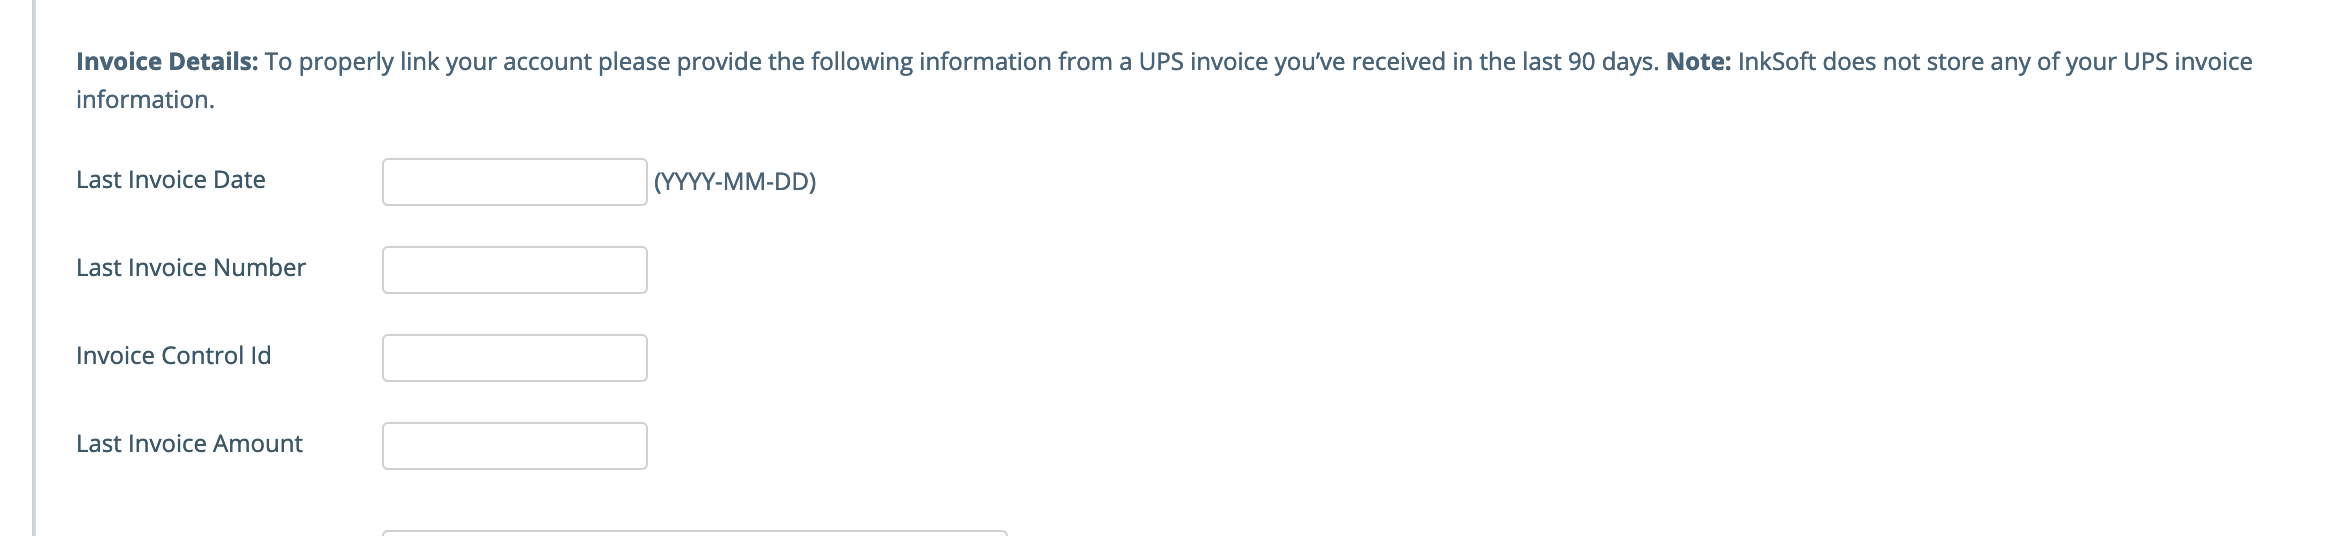 UPS Real-Time Rates